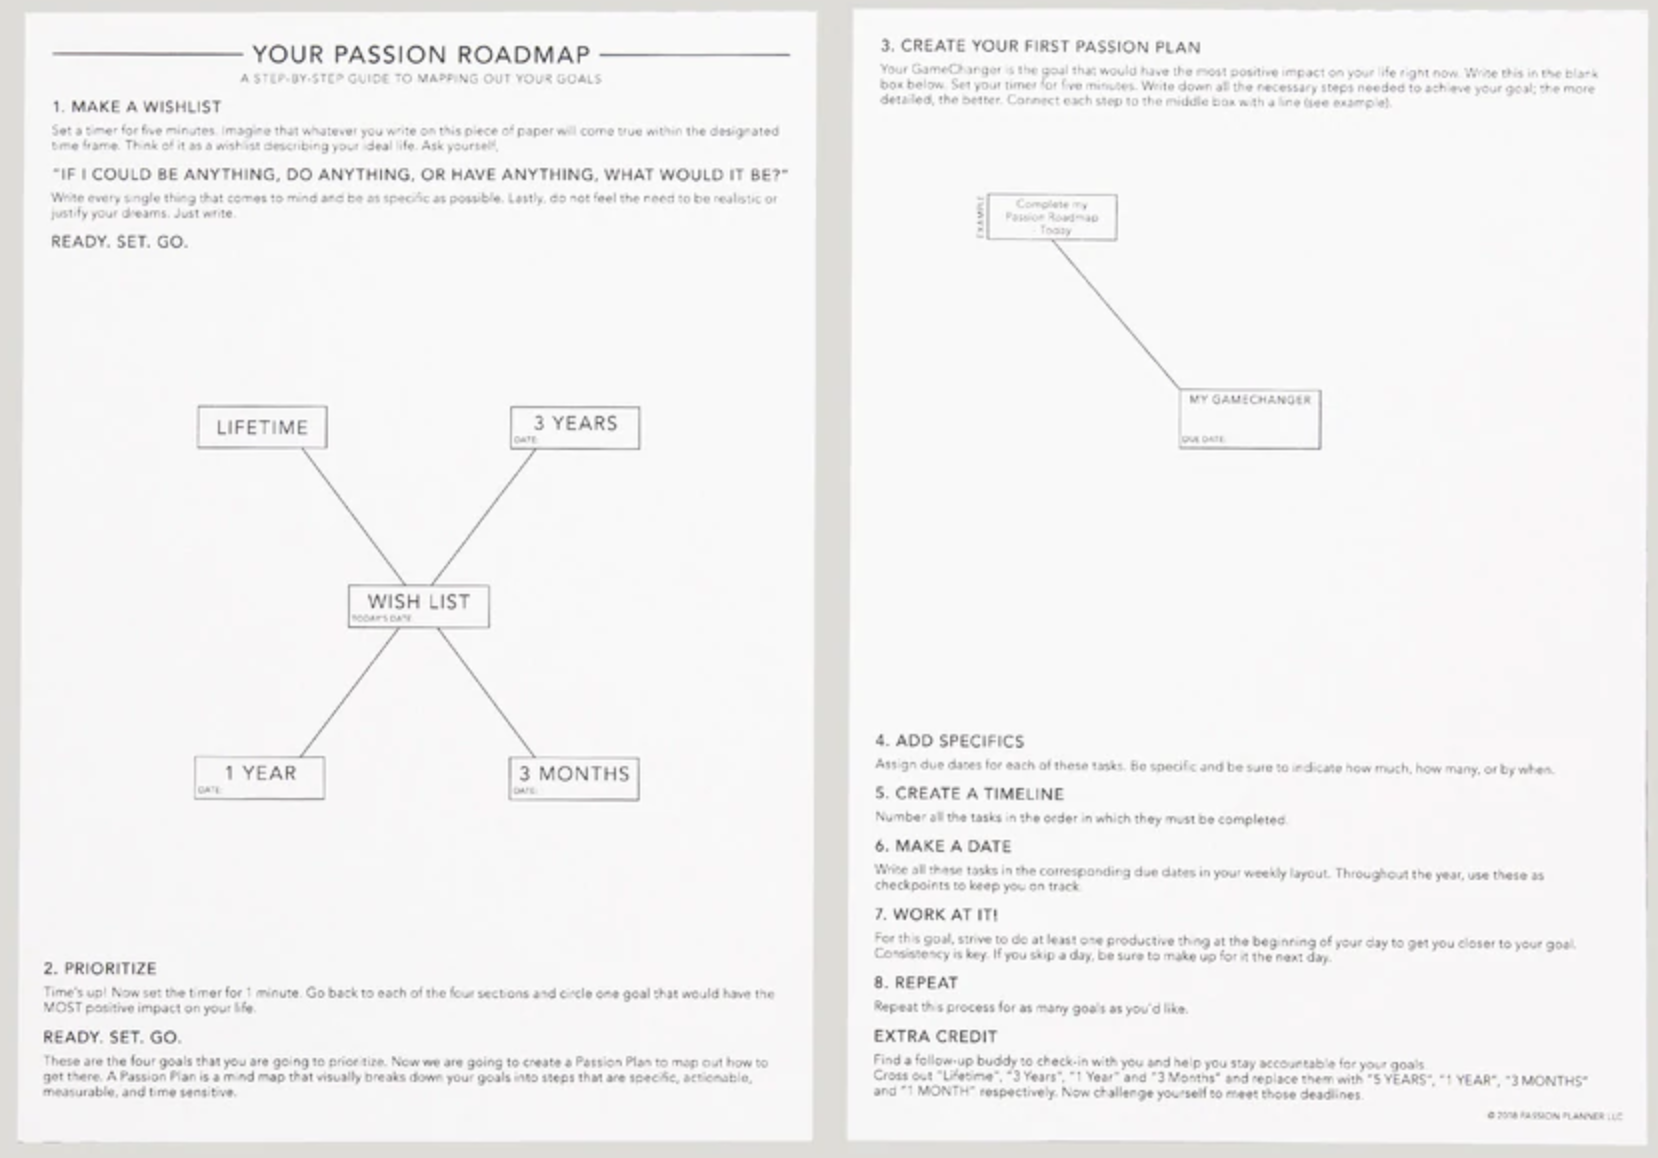 Roadmap Passion Planner